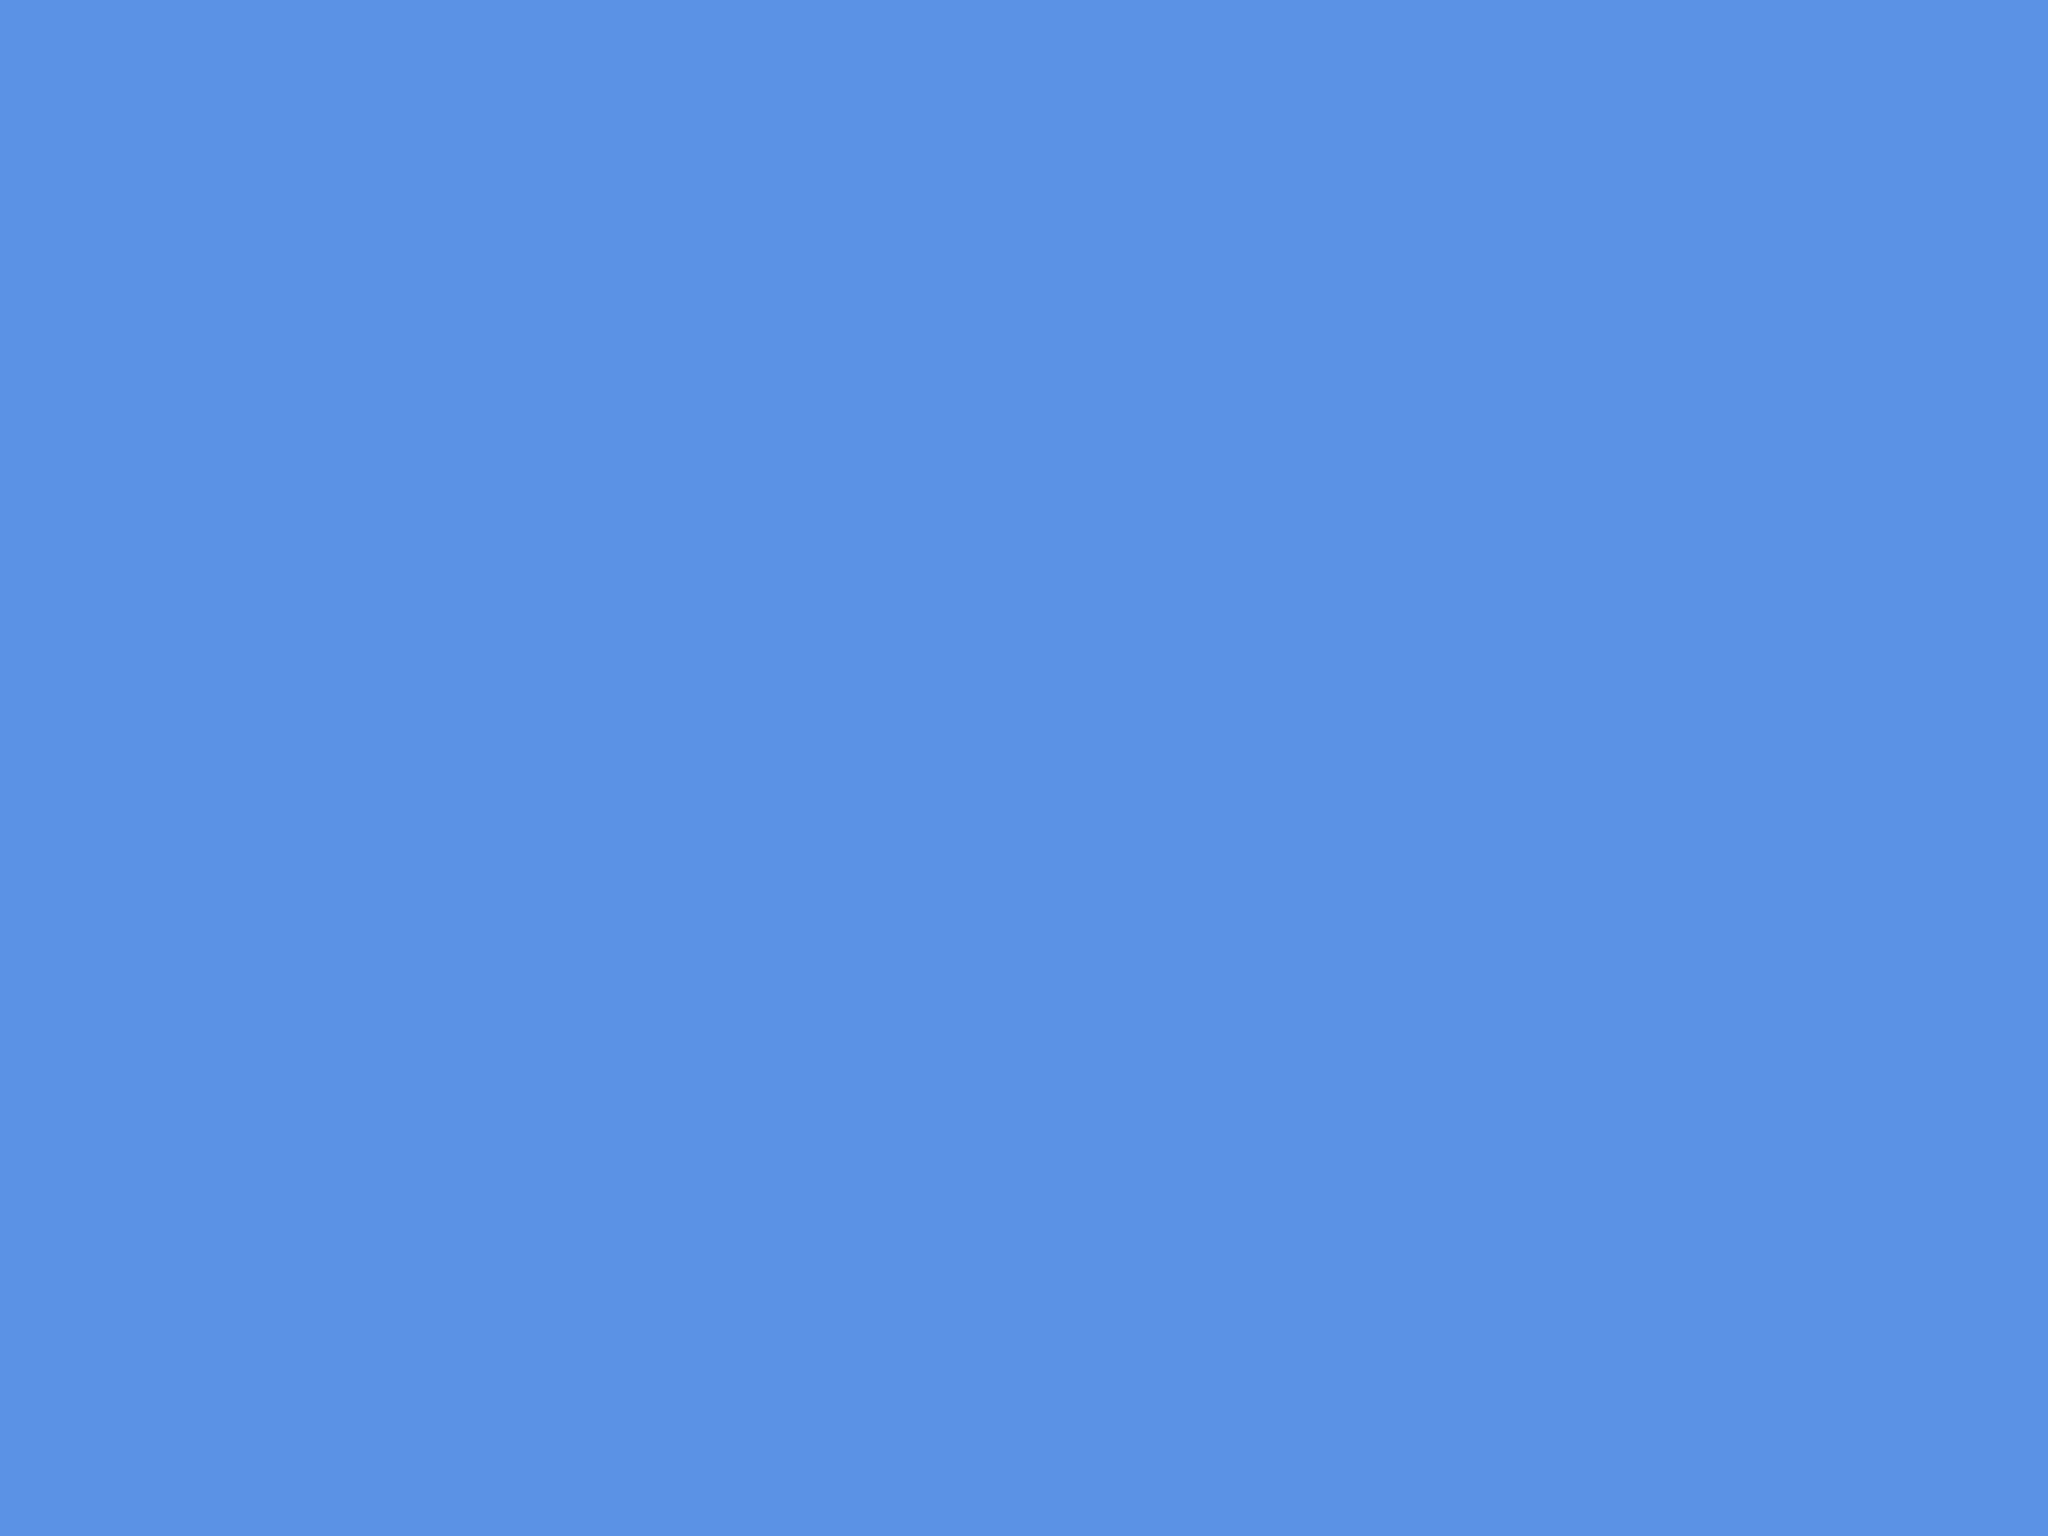 2048x1536 United Nations Blue Solid Color Background